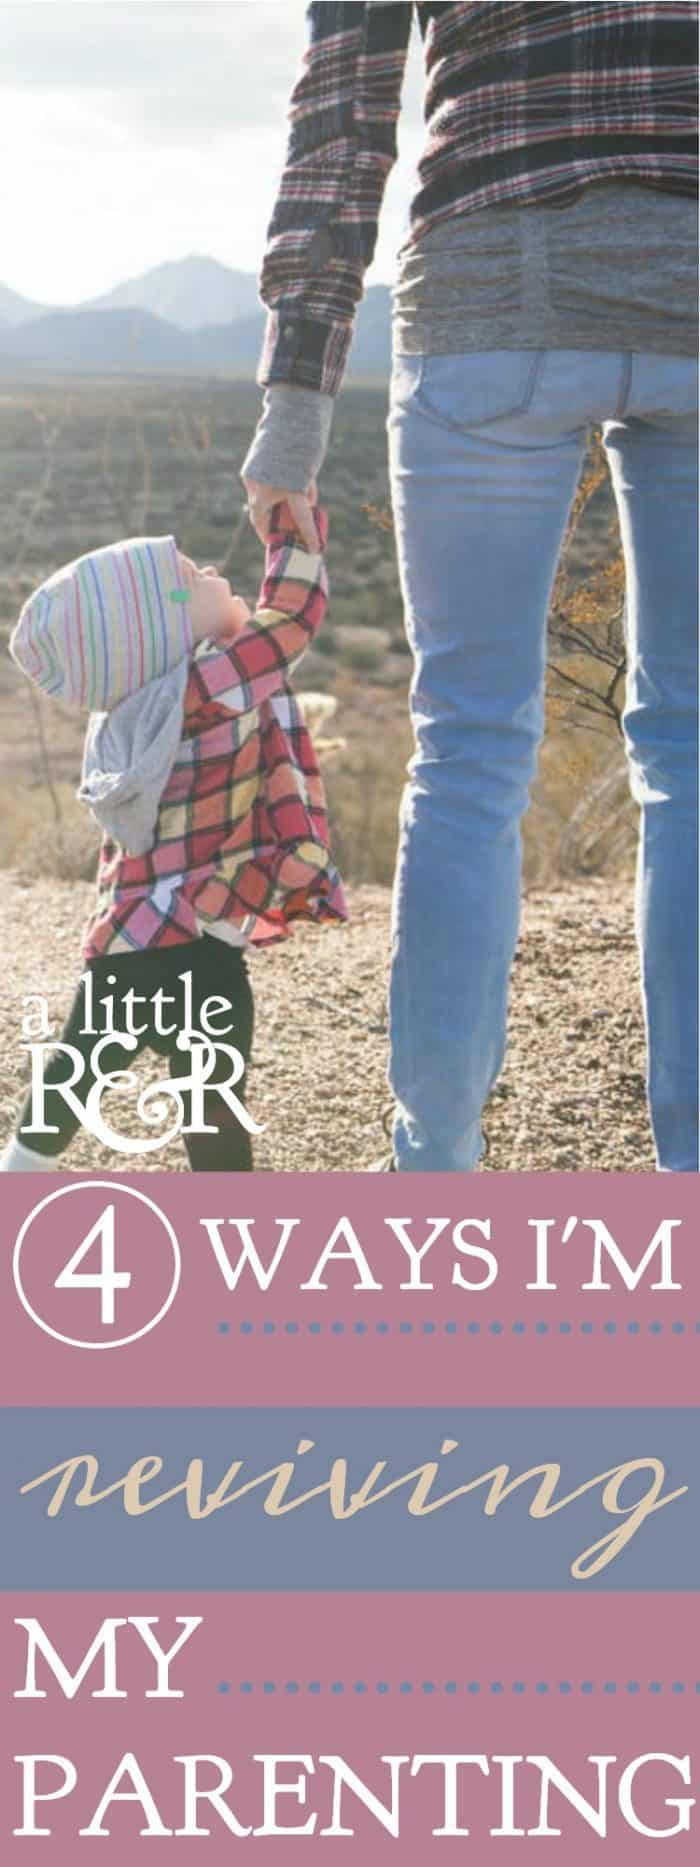 Are we raising godly children, or just good children? Many times I can see I need to refocus my parenting on what is truly important. Here is how I'm reviving my parenting.